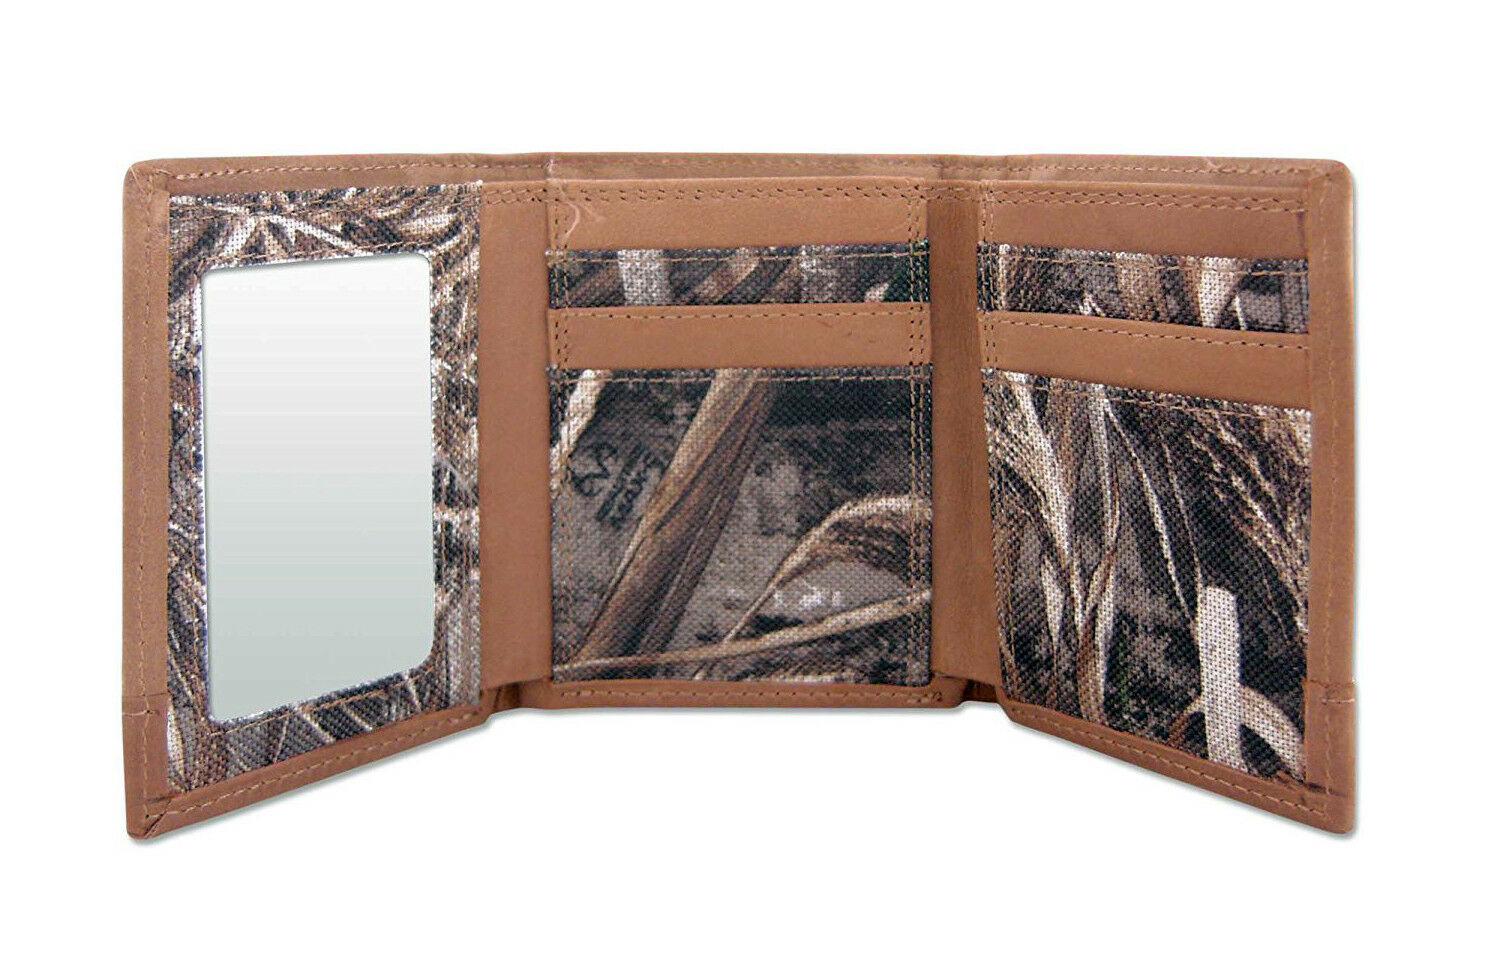 Penn State Nittany Lions Tri-fold Realtree Max-5 Camo /& Leather Wallet w// Concho